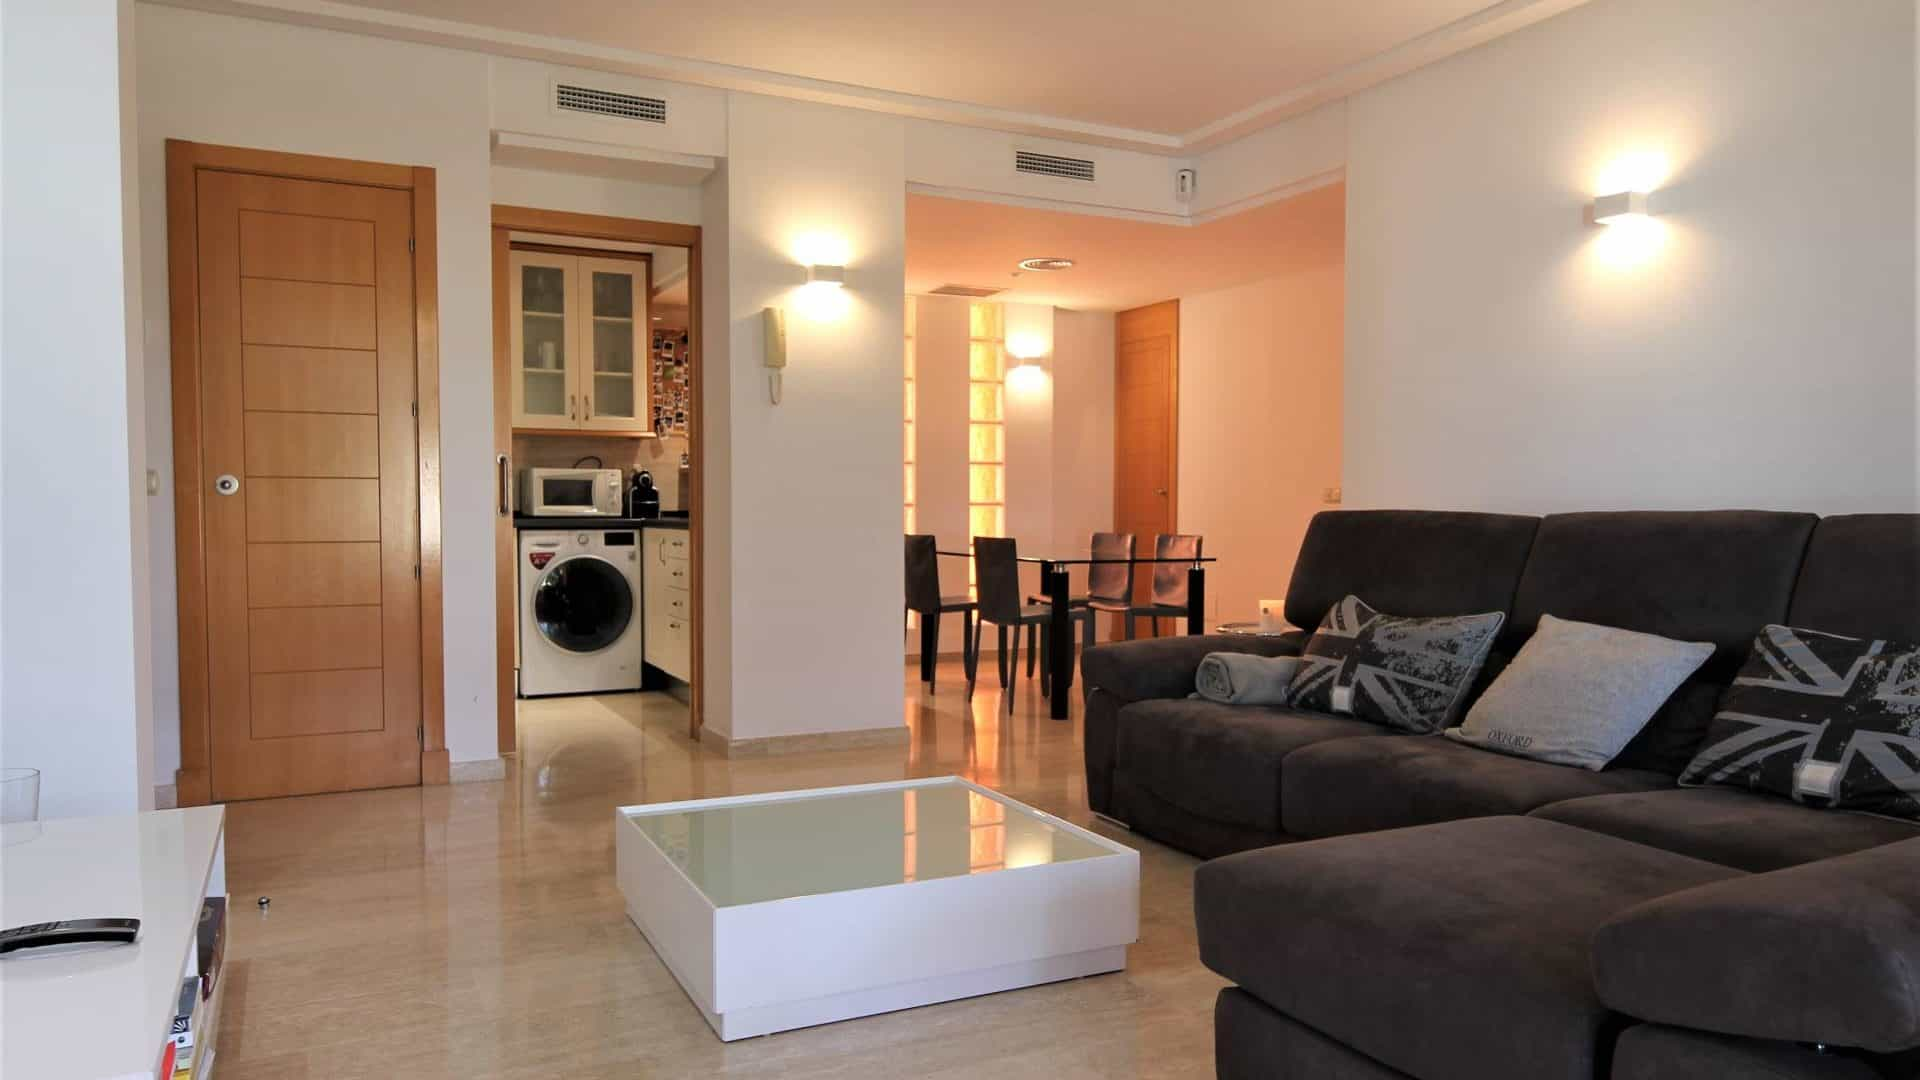 Pinar golf Roca llisa 2 bedroom apartment for rent